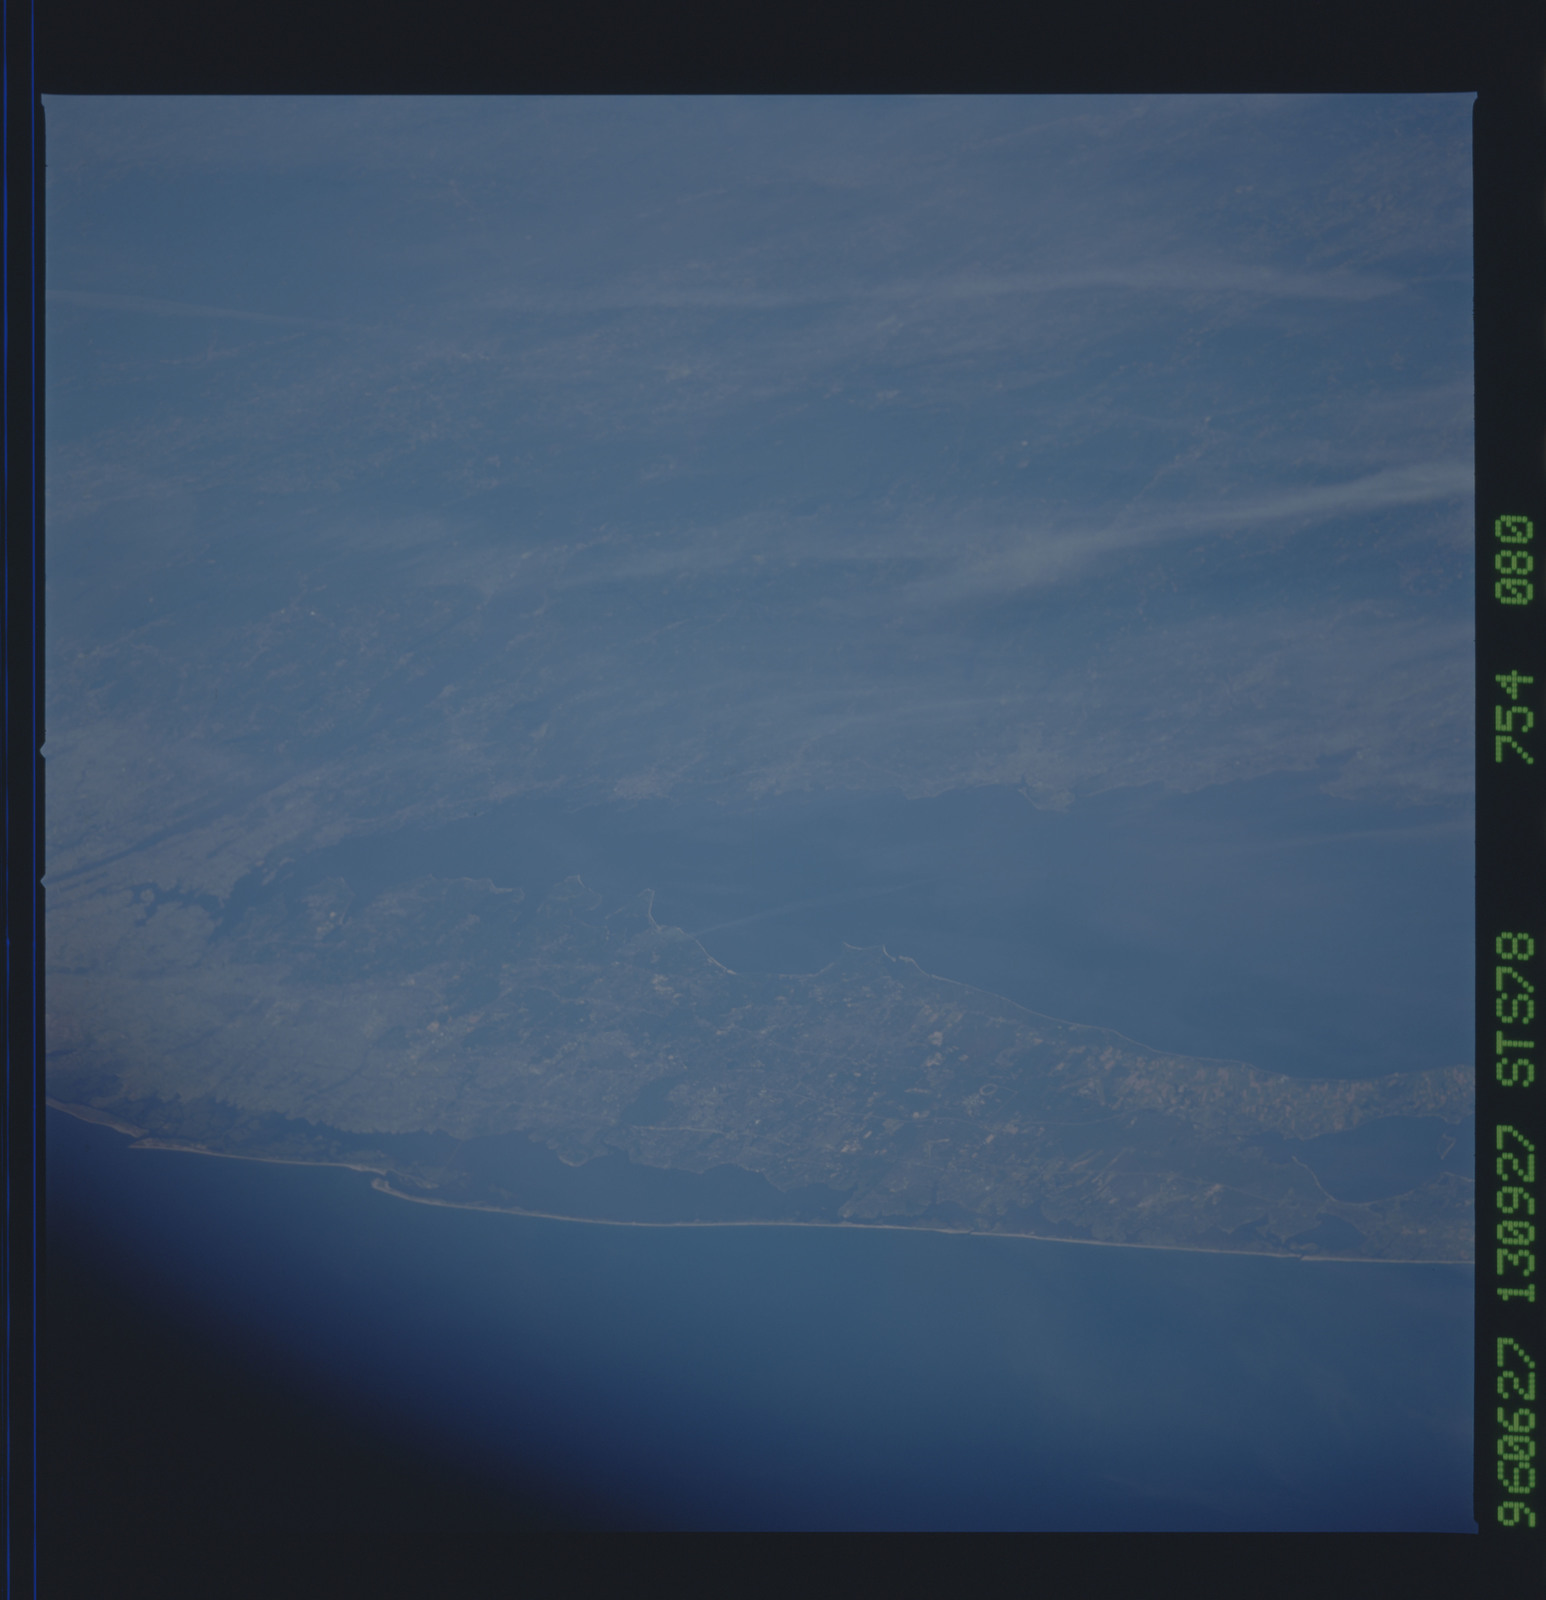 STS078-754-080 - STS-078 - Earth observations taken from Space Shuttle Columbia during STS-78 mission